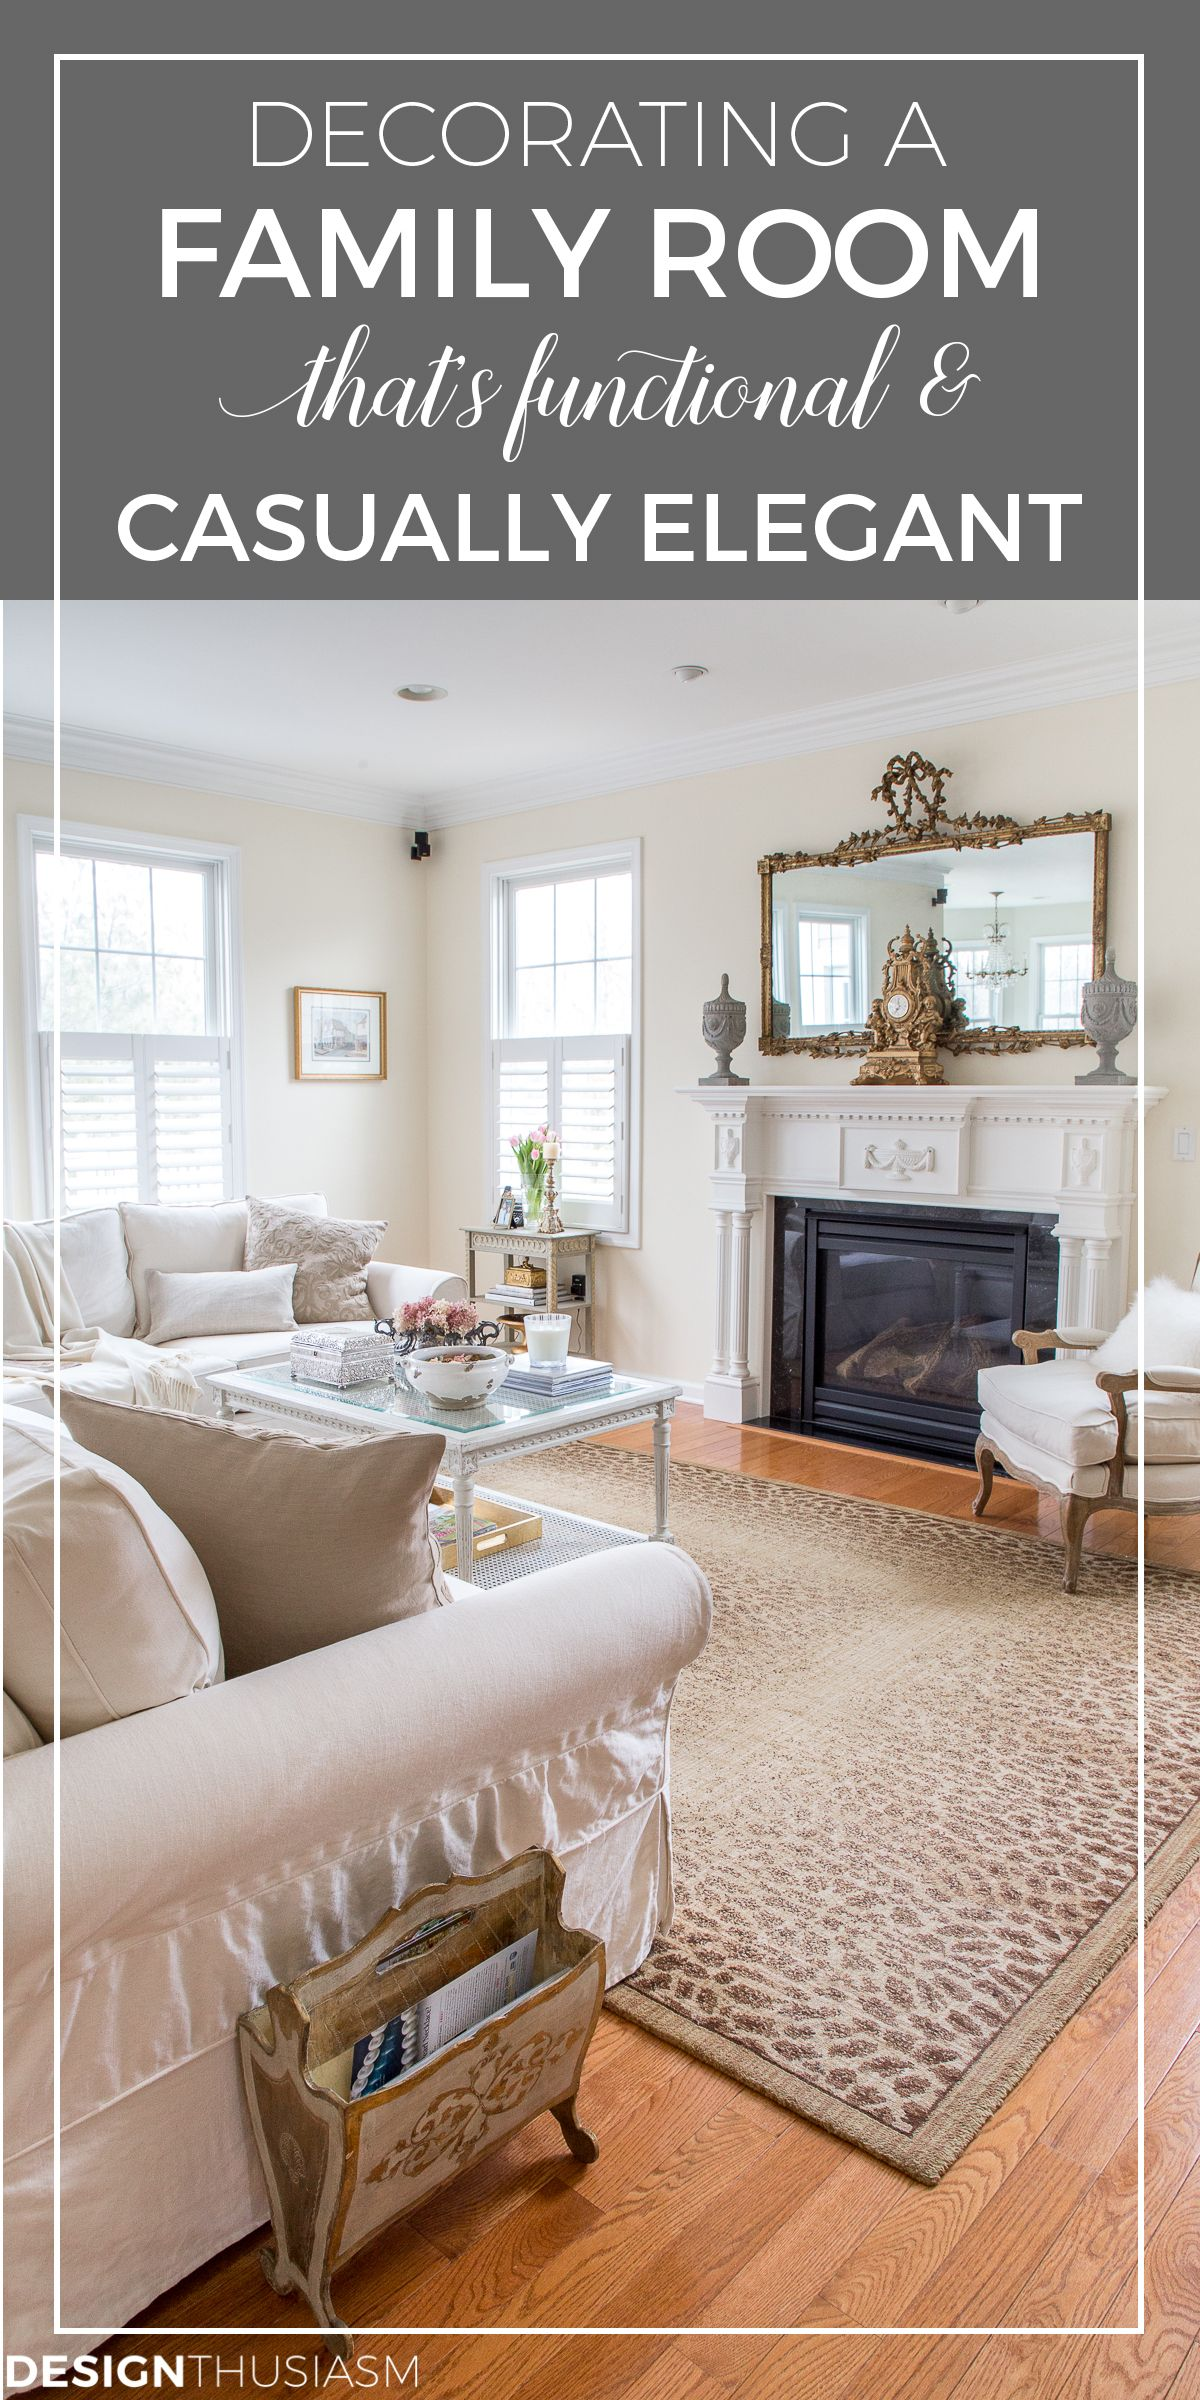 Casually Elegant Family Room The Needs To Serve Several Purposes From Functional